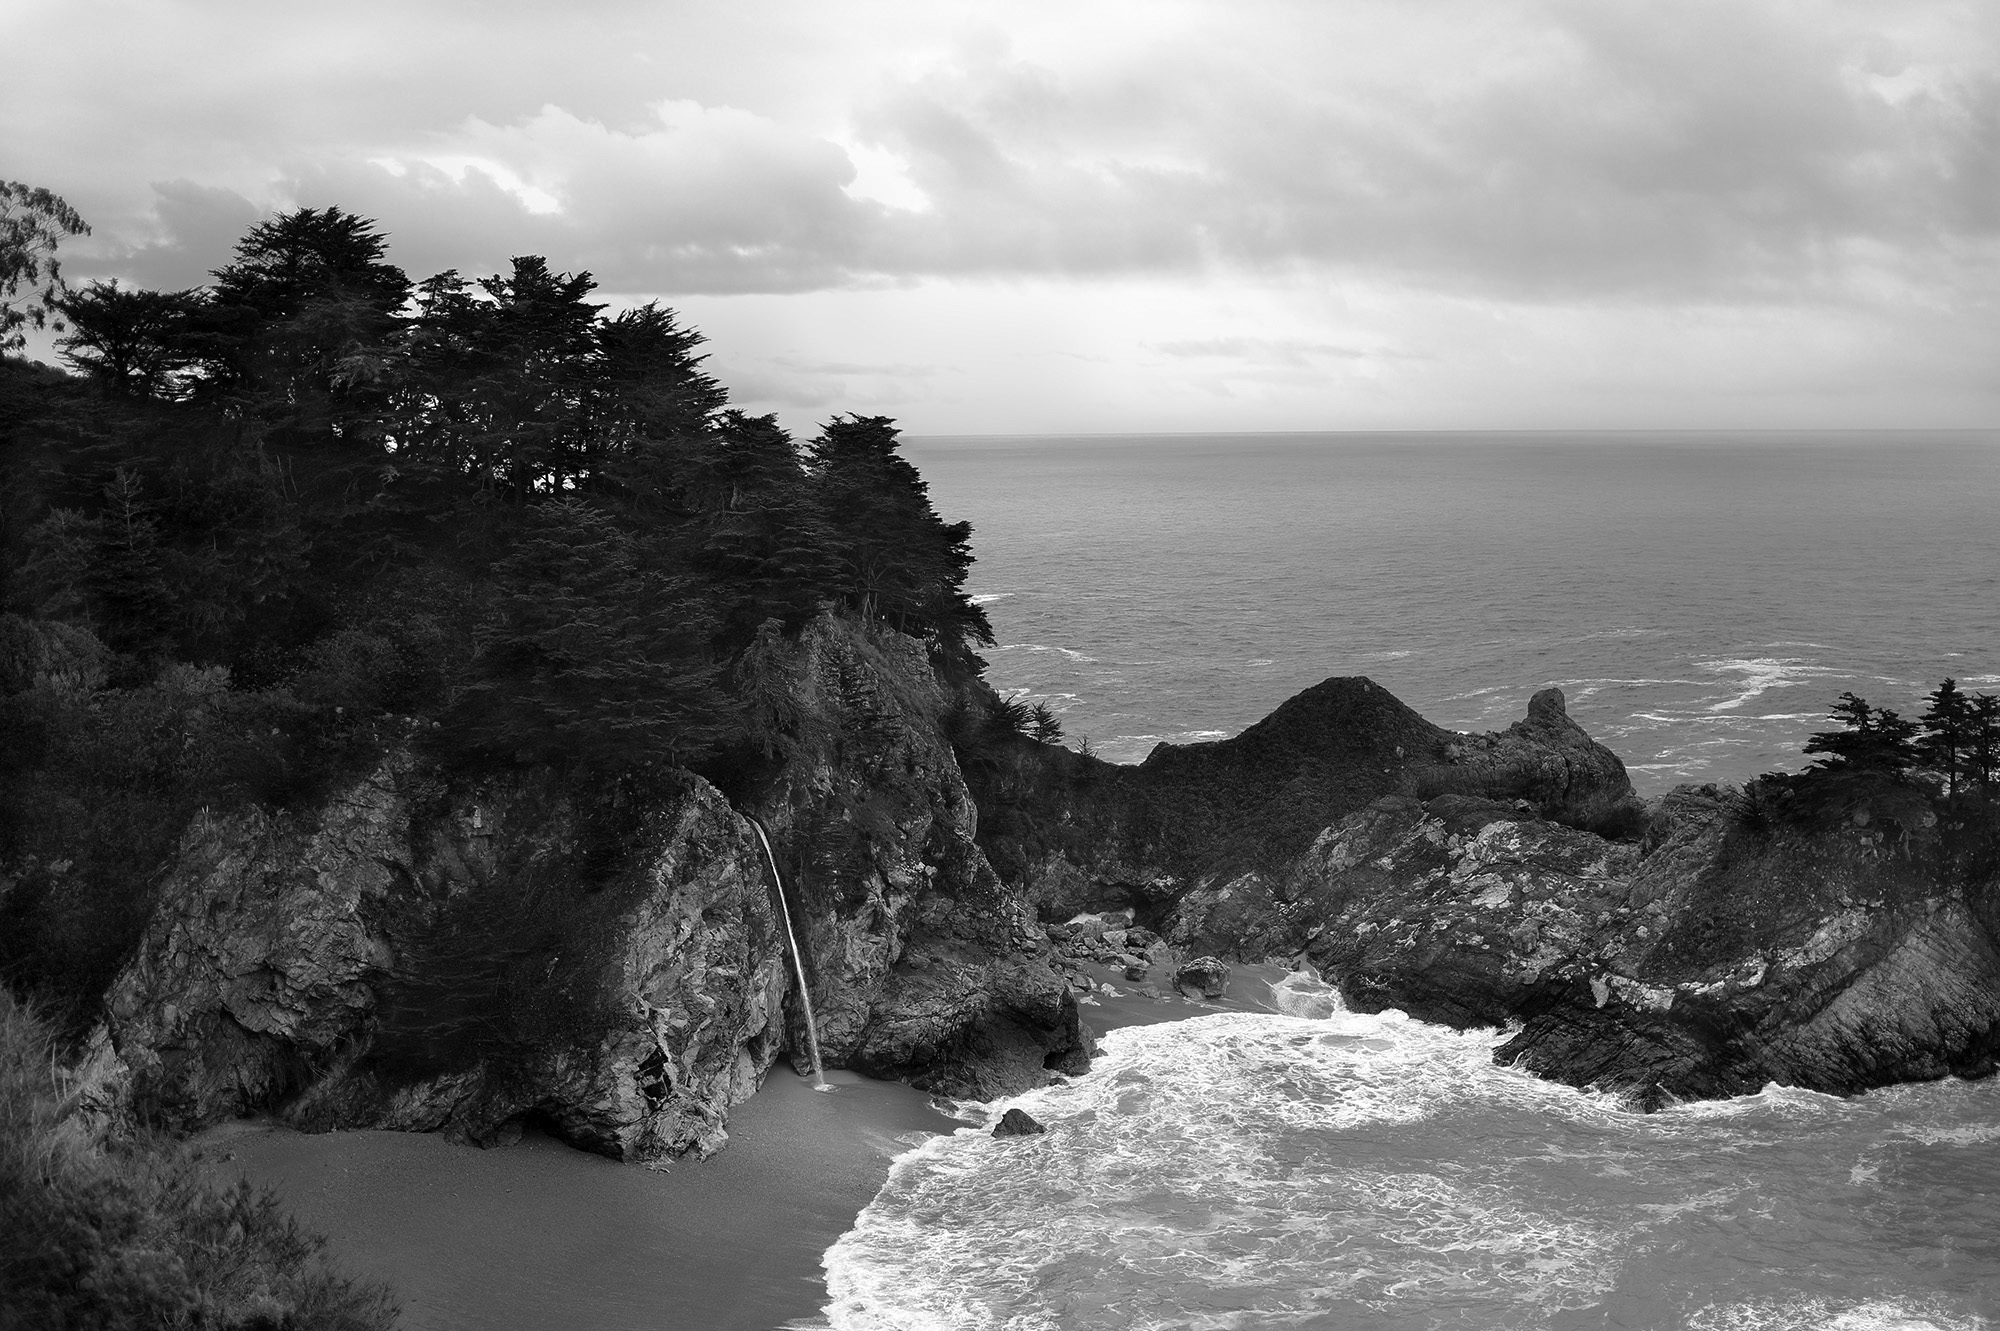 Big Sur Morning in Black and White by Rich J. Velasco